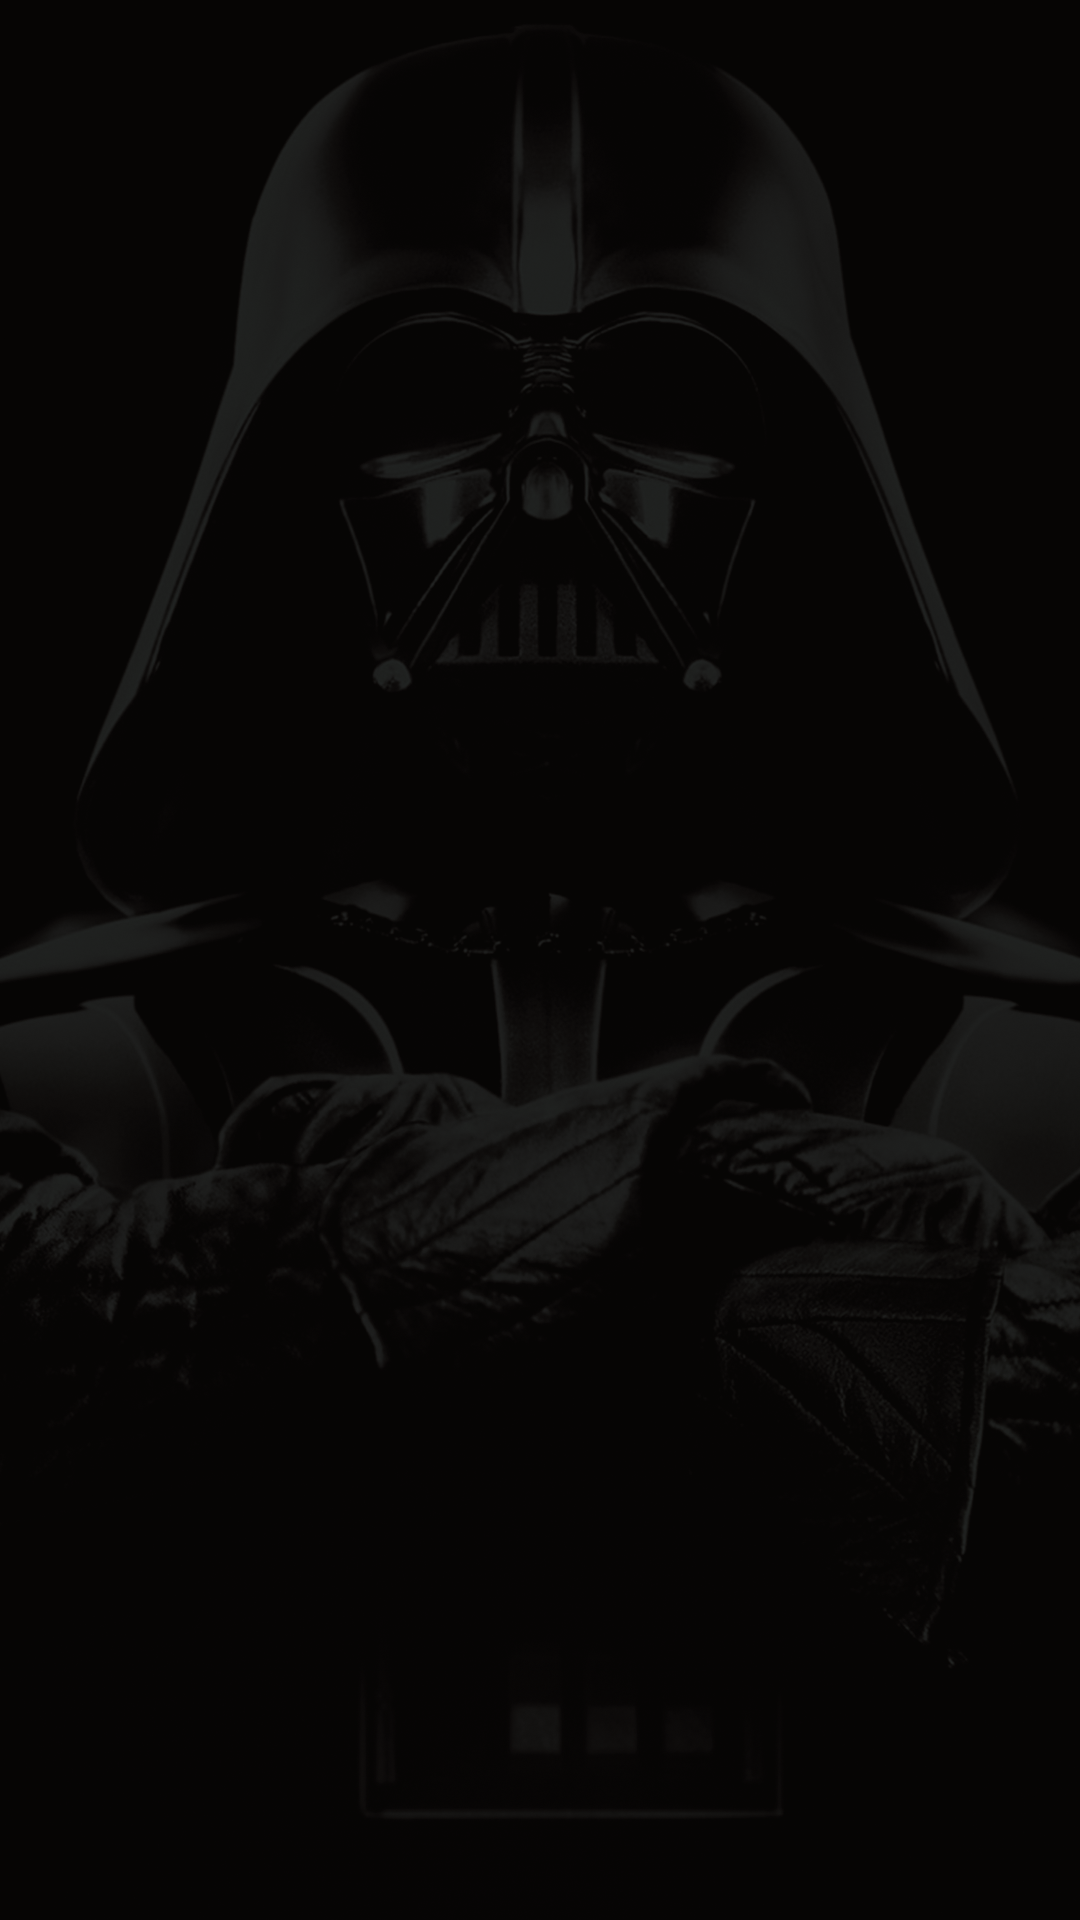 Darth Vader Black IPhone Wallpaper